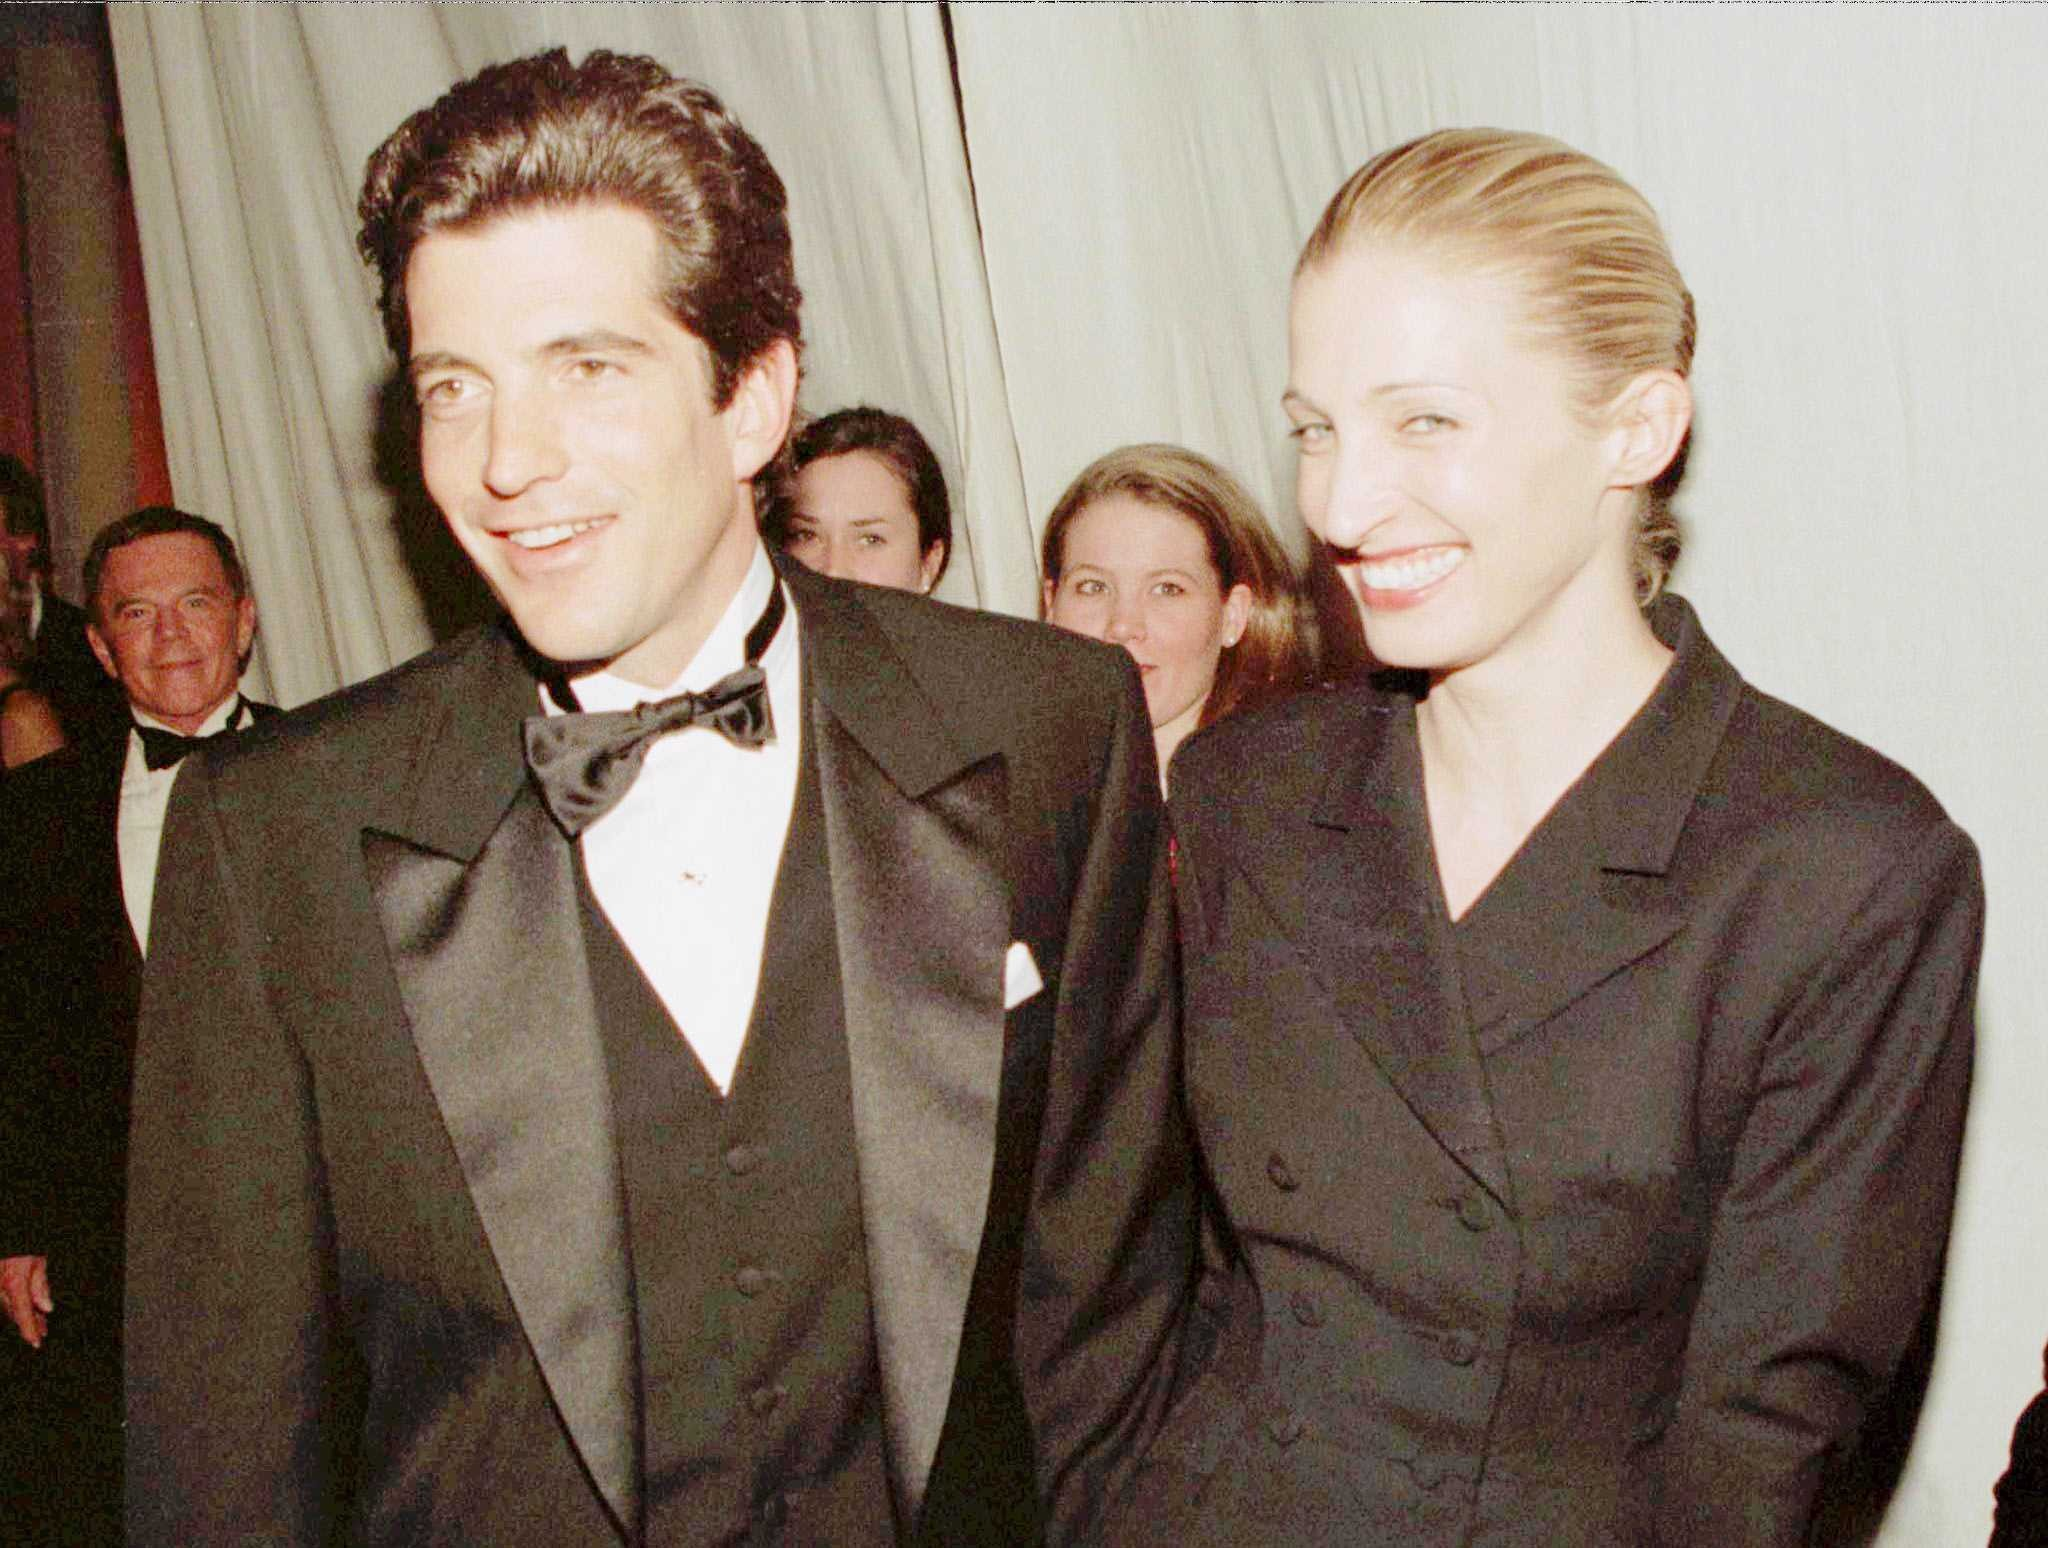 A Look Back At Jfk Jr S Life And Death On The 20th Anniversary Of His Plane Crash Off Martha S Vineyard The Boston Globe,Christina El Moussa Wedding Ring With Tarek